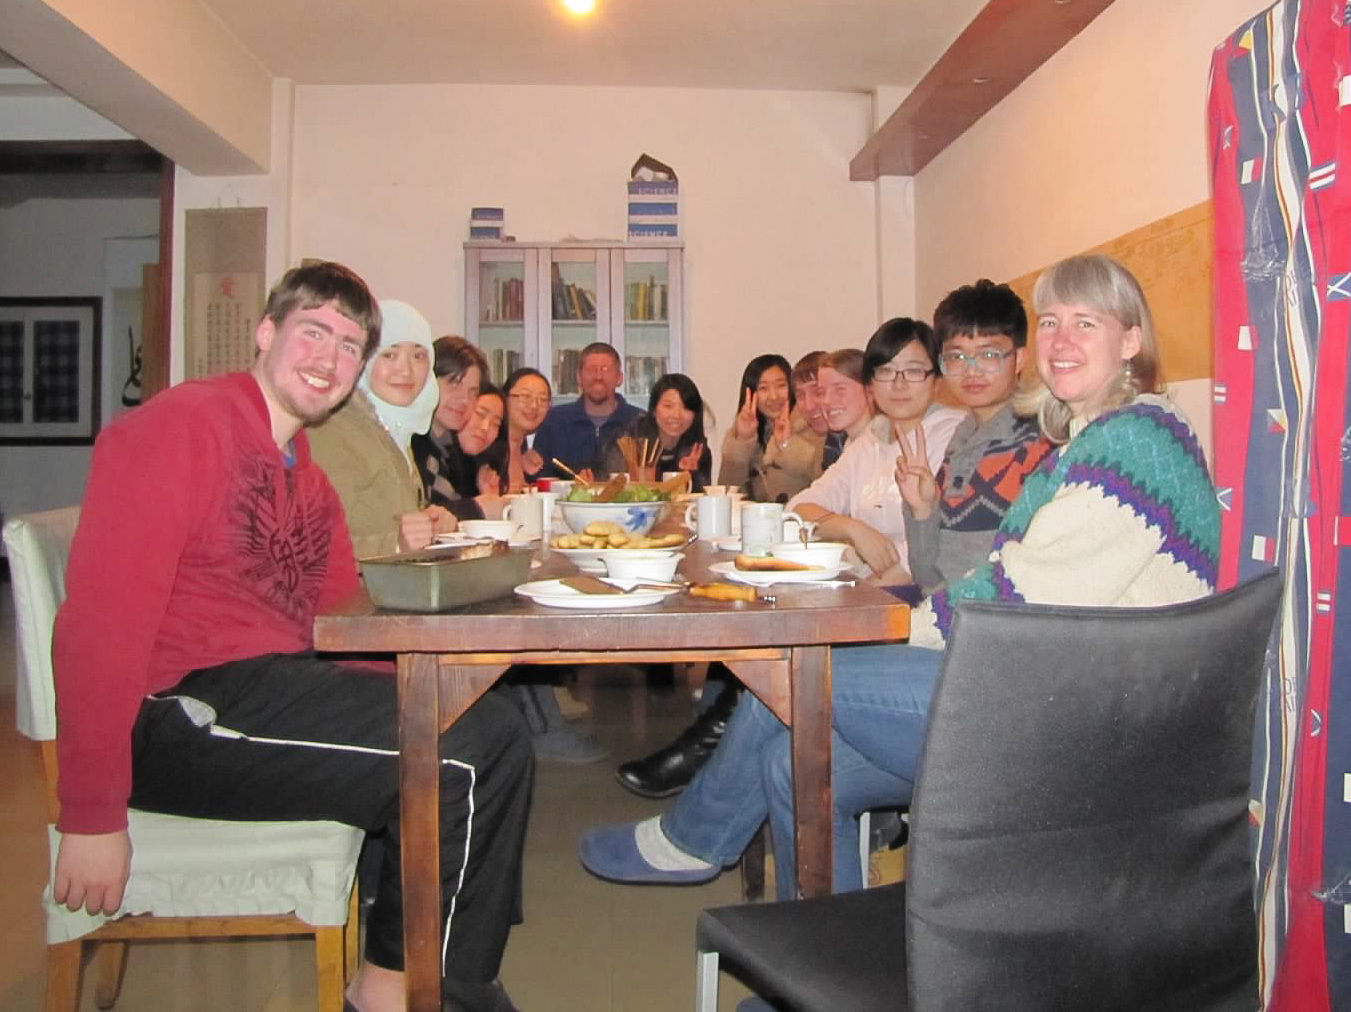 Hosting a Thanksgiving meal for Jodie's husband's classmates in the city.